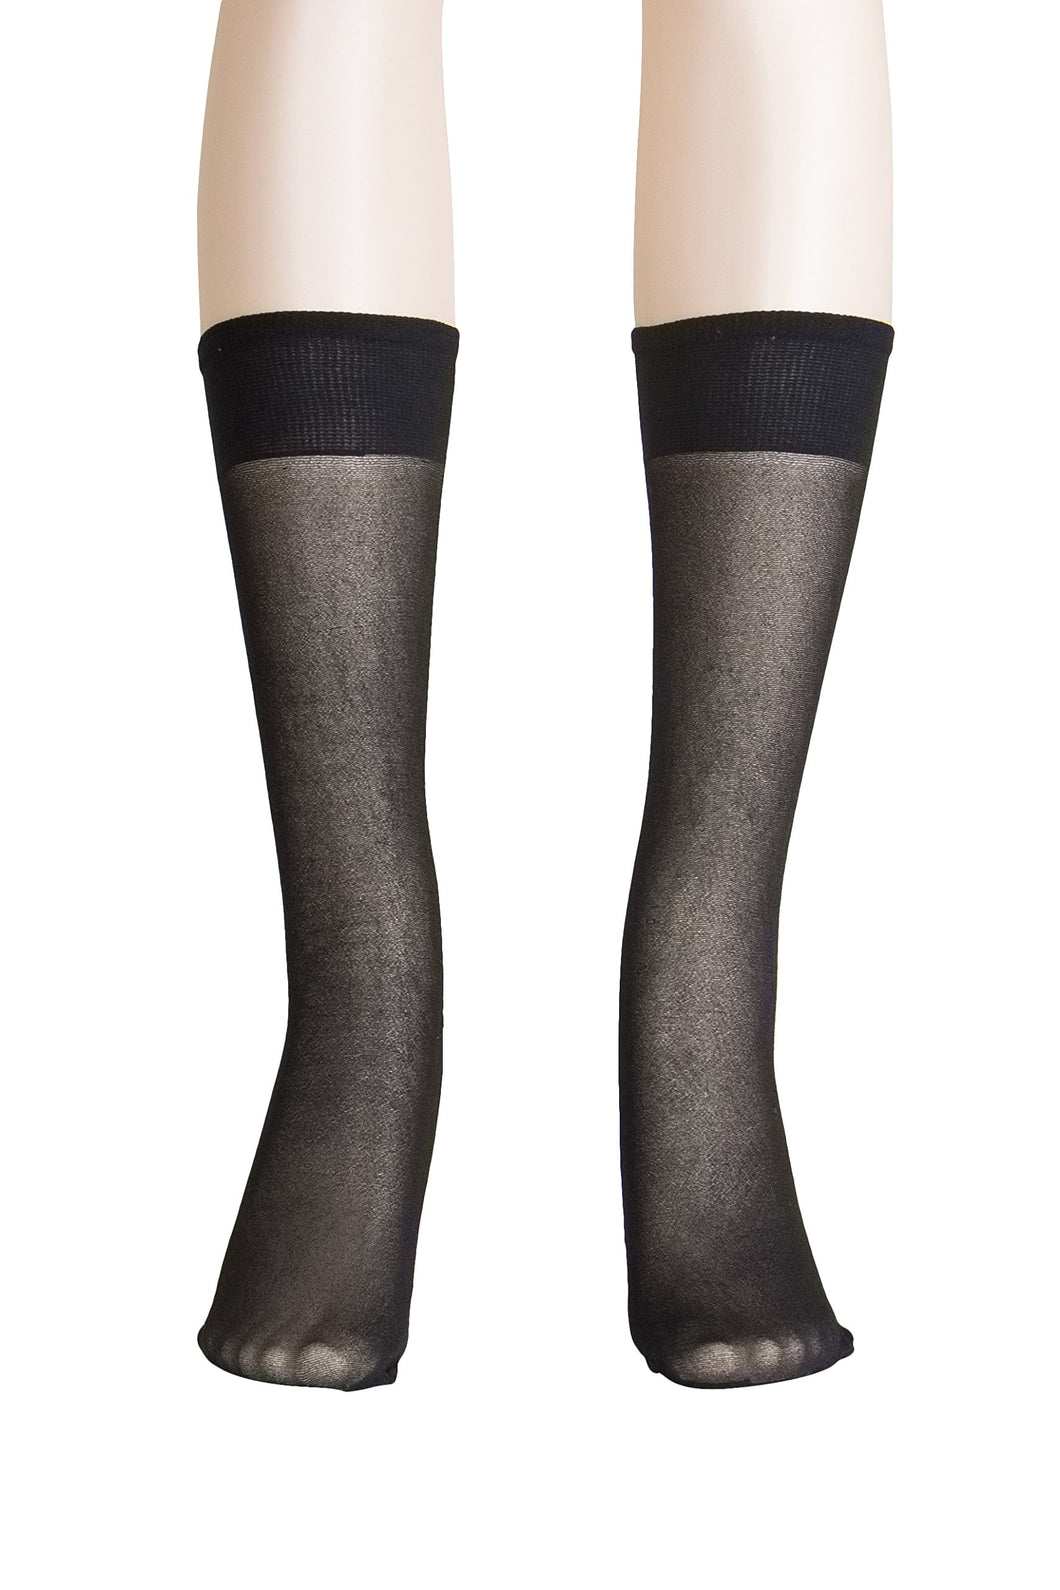 Lissele 'Light' Support Women's Plus Size Knee High 3 Pack (Black, XXXXL)